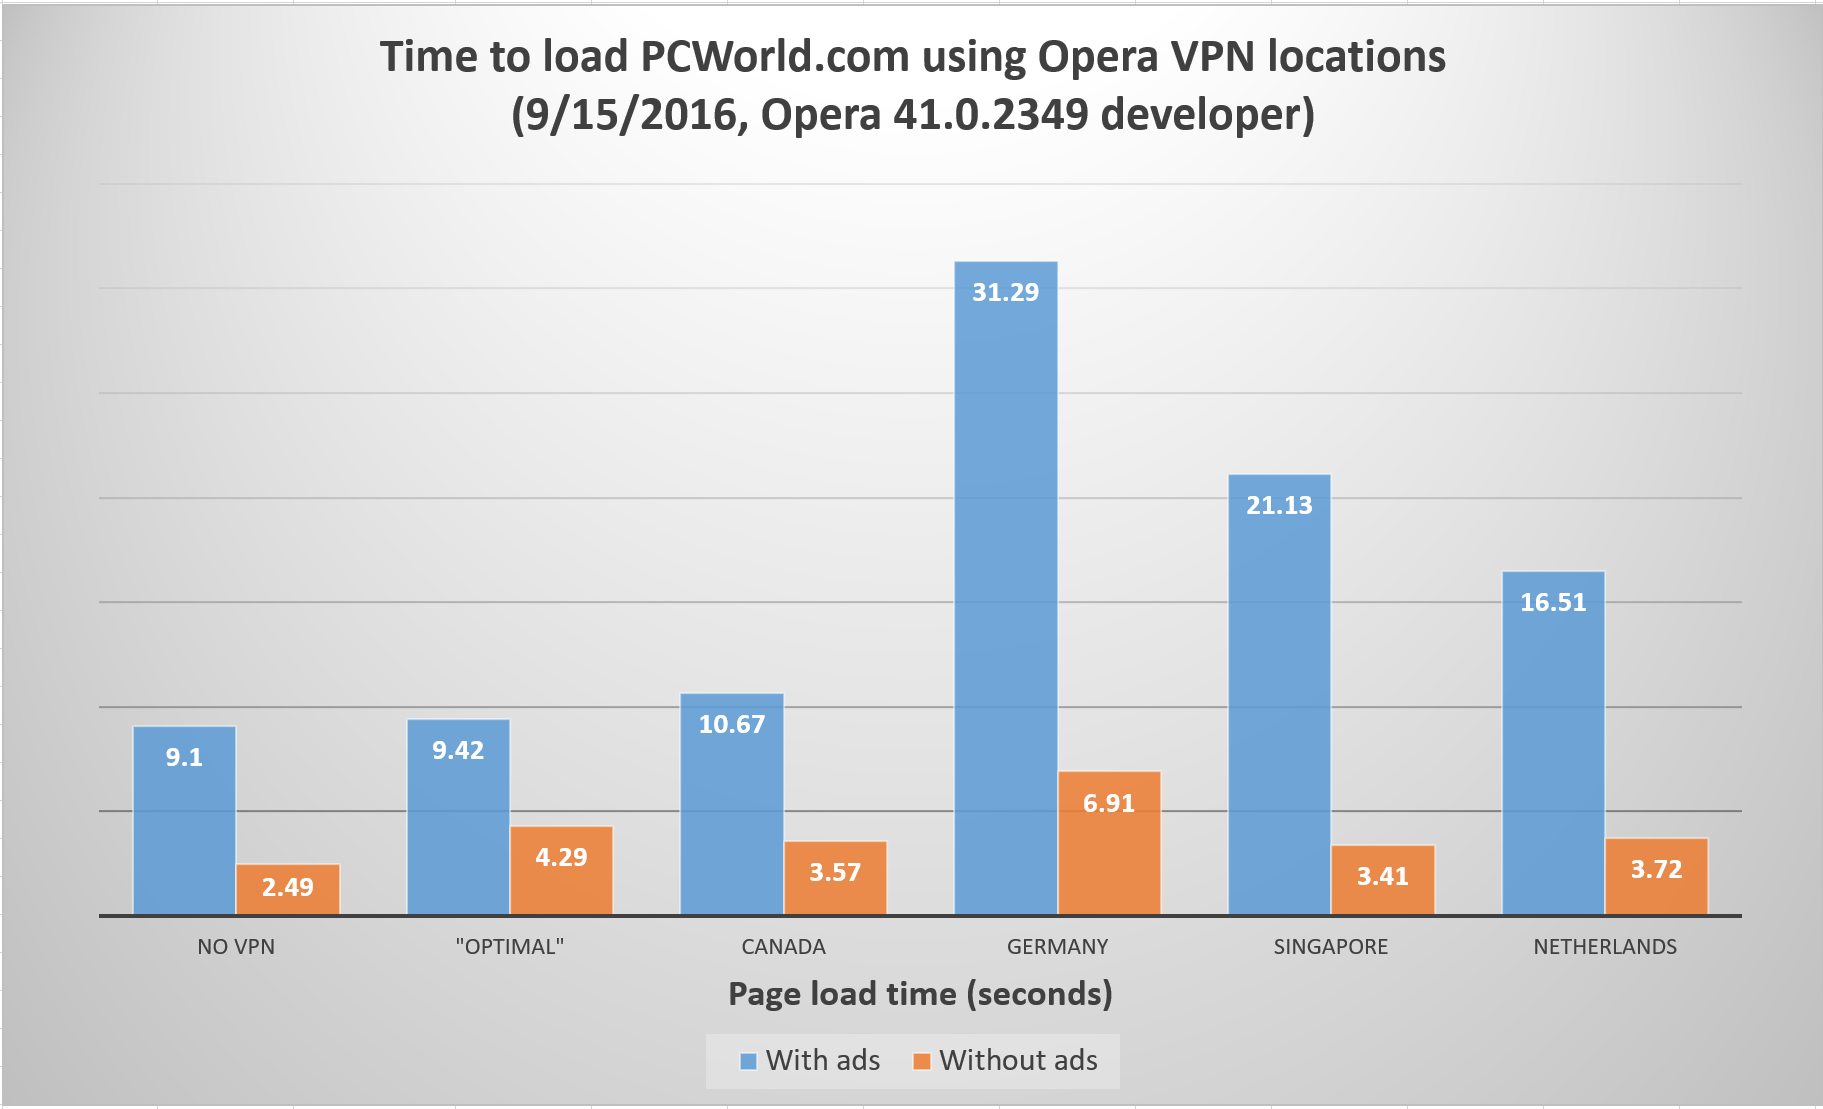 Opera launches desktop version of its free unlimited VPN